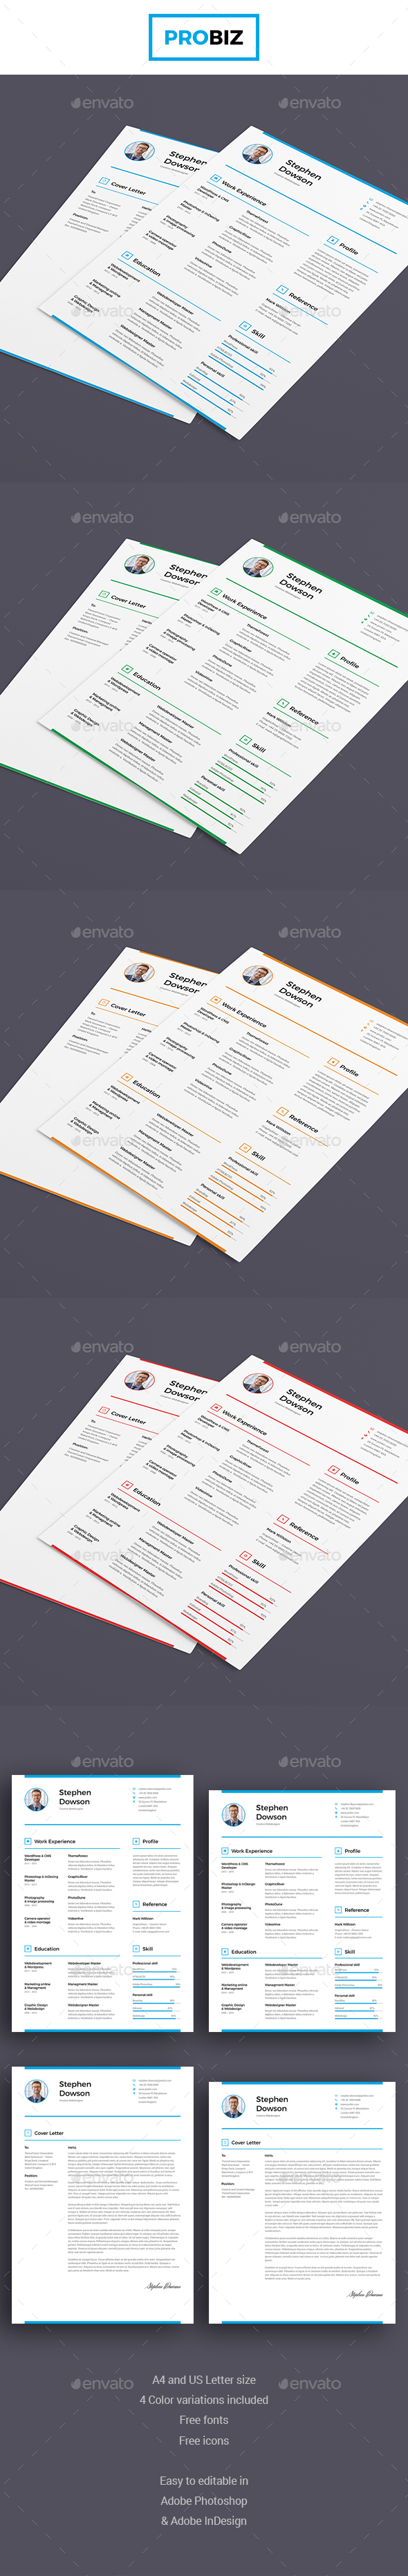 ProBiz – Business and Corporate Resume and Cover Letter